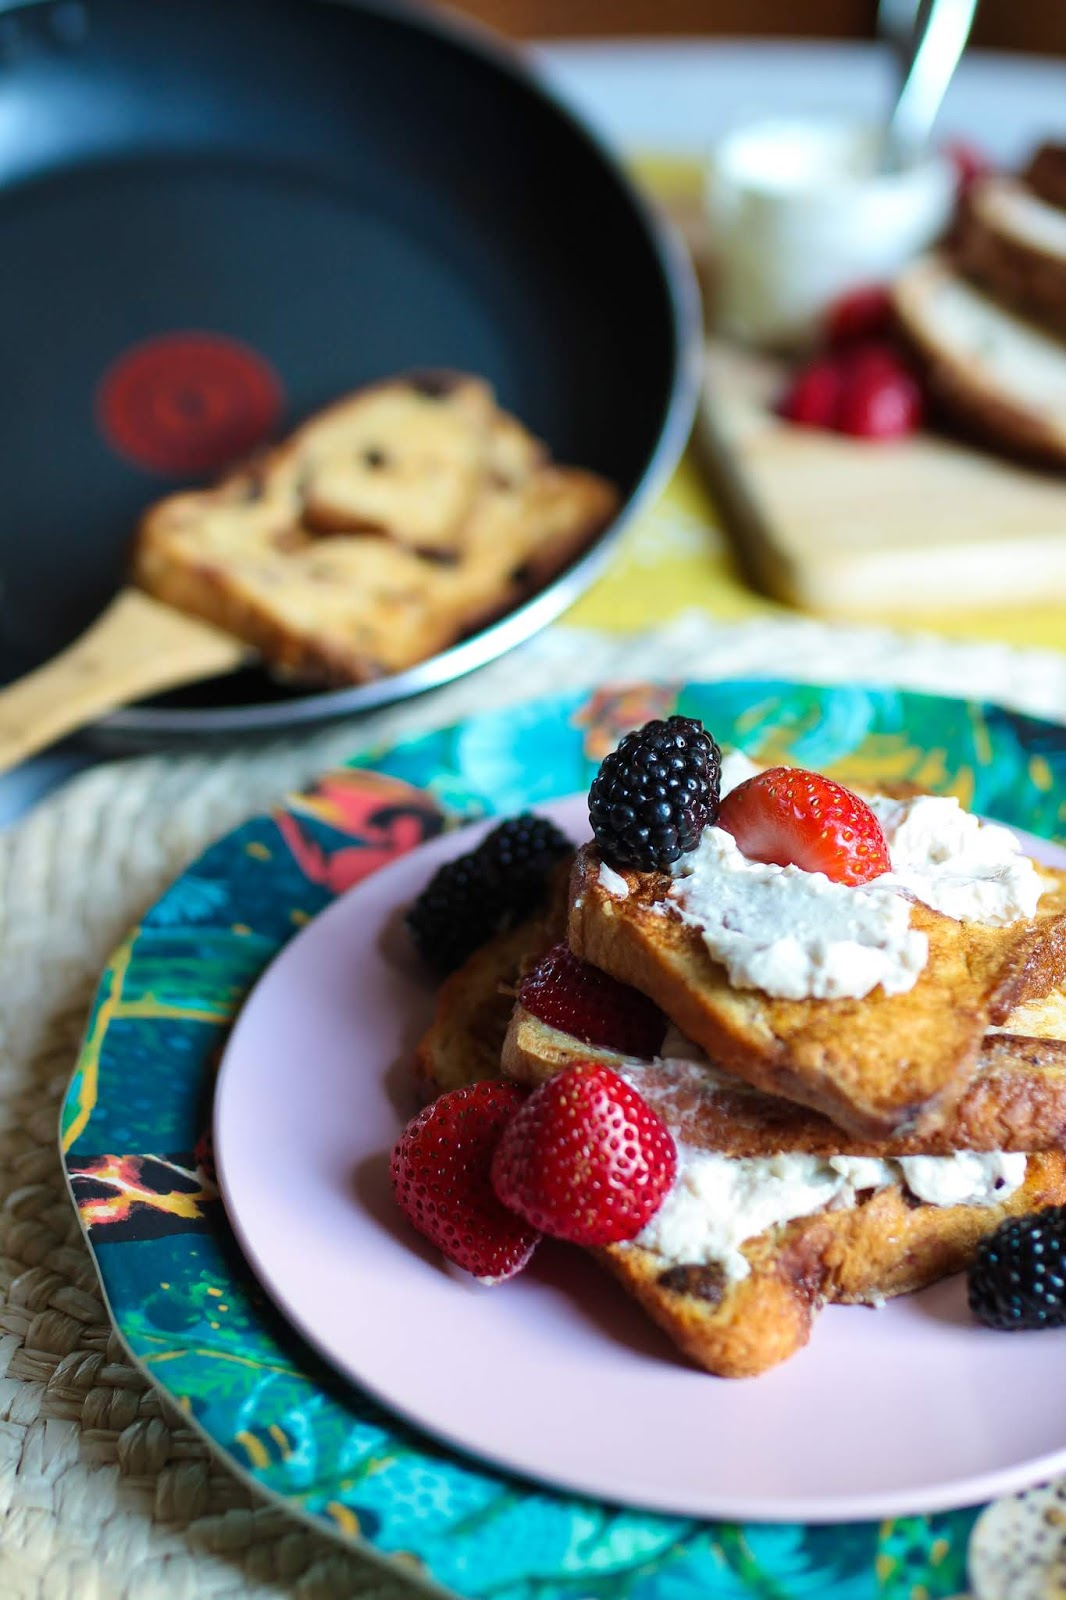 French toast, easy French toast, French toast recipe, brunch recipe, monkey bread recipes, monkey bread French toast, maple cream cheese, monkey bread brunch, easy brunch recipes